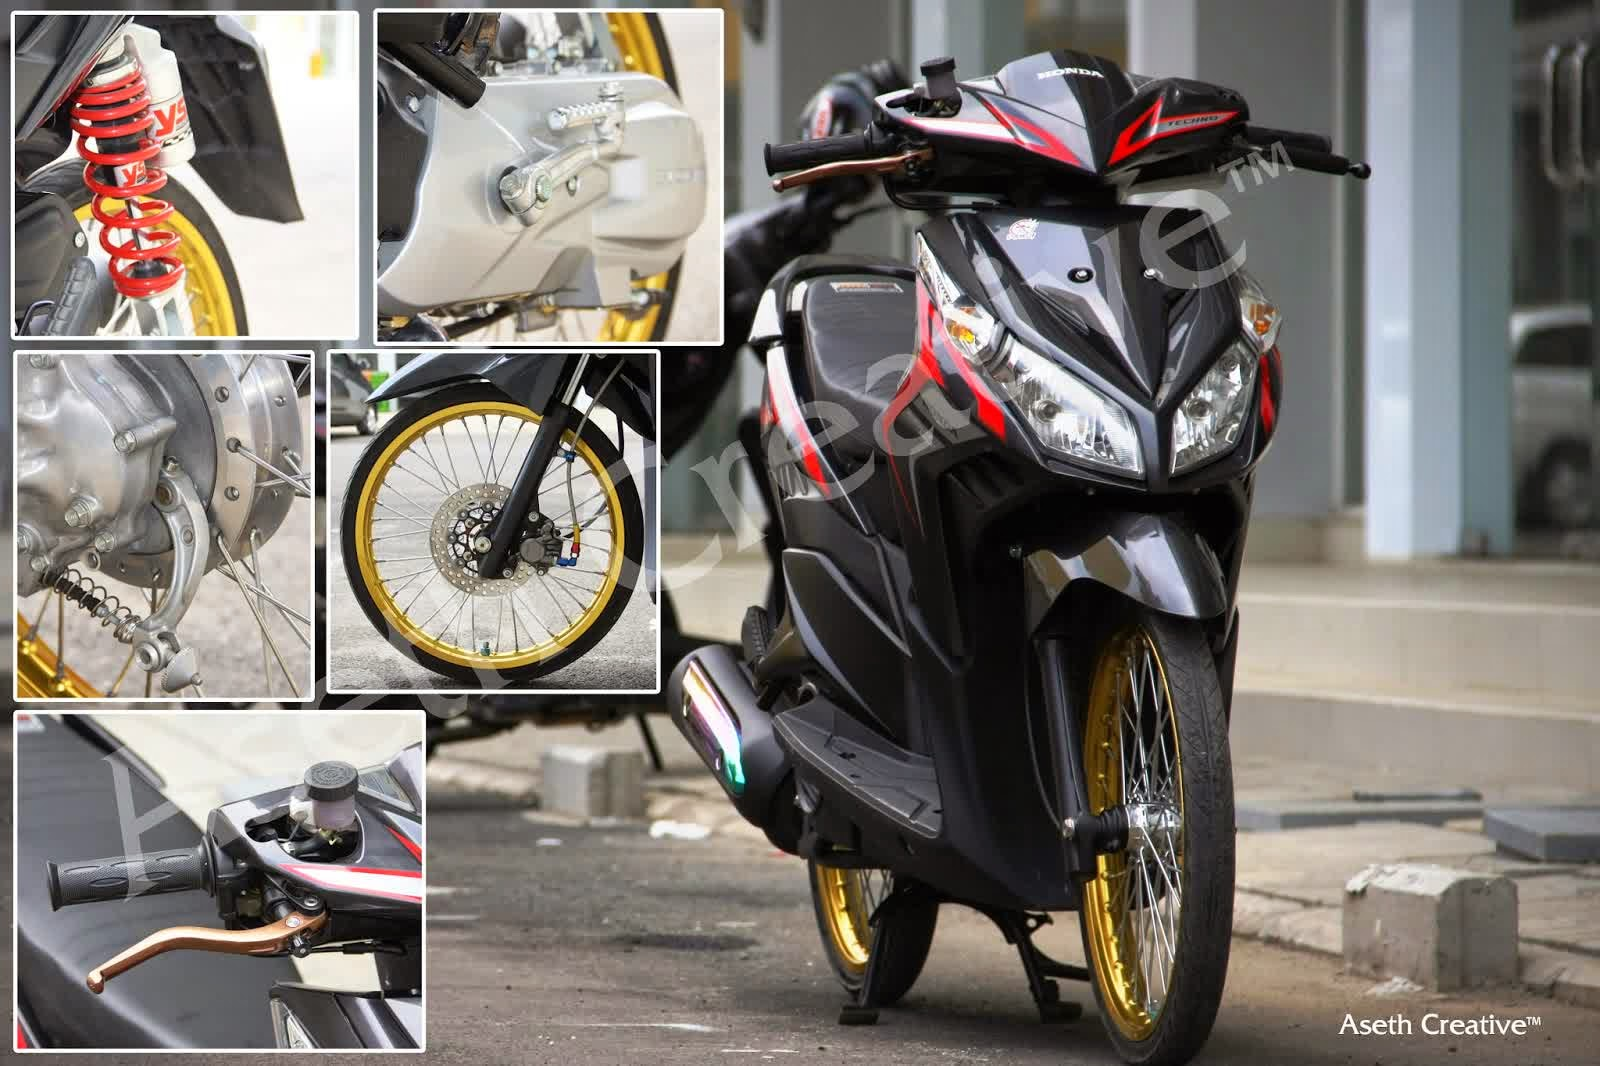 Modifikasi Vario Techno 110 Kumpulan Modifikasi Motor Vario